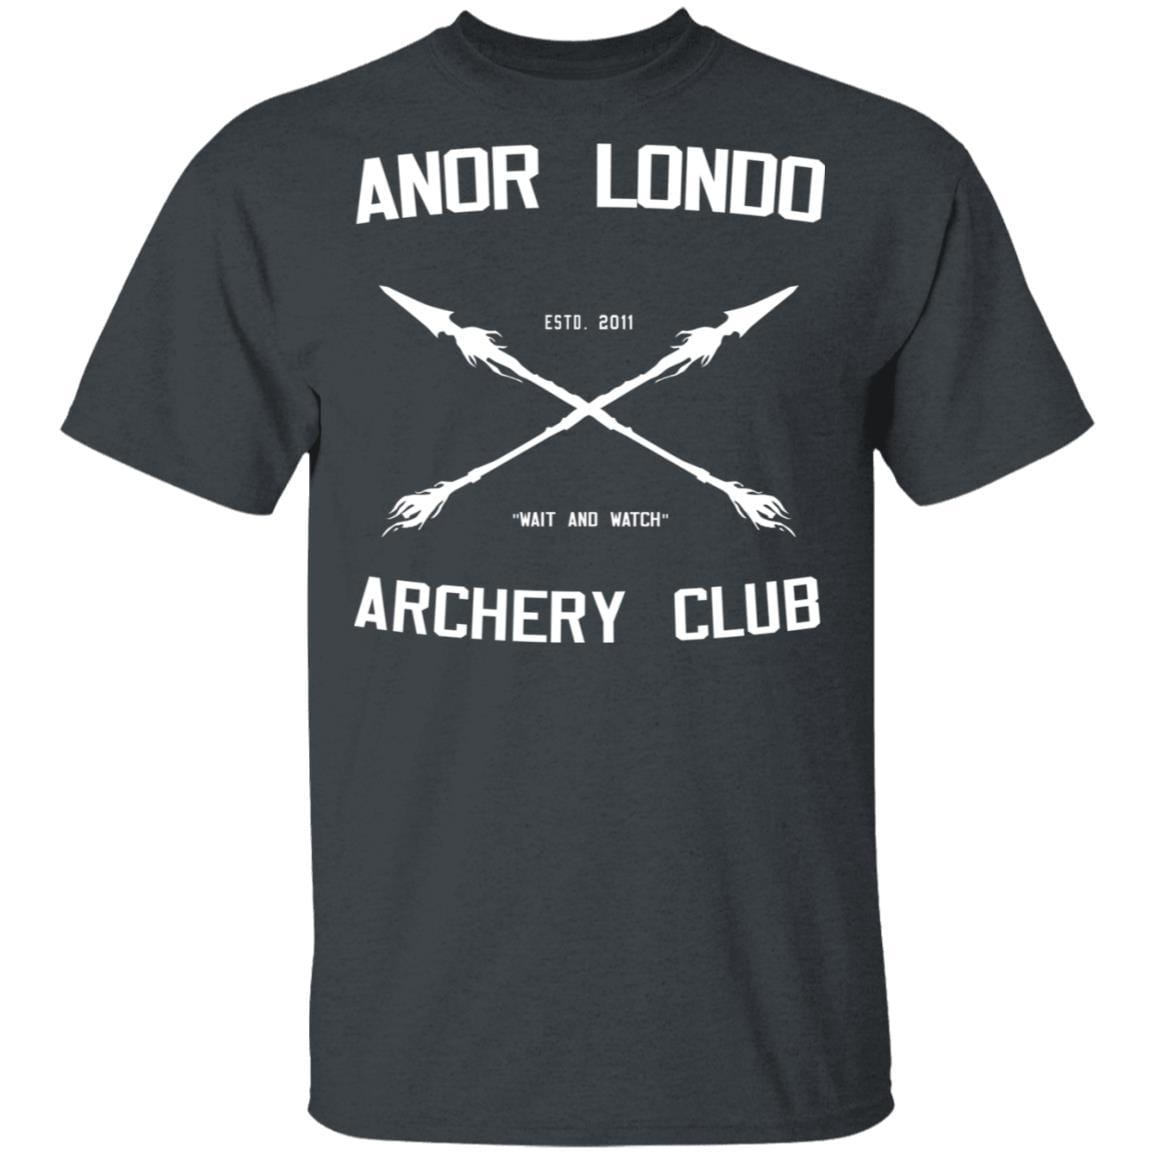 Anor Londo Archery Club 2011 T-Shirts, Hoodies 1049-9957-88767425-48192 - Tee Ript